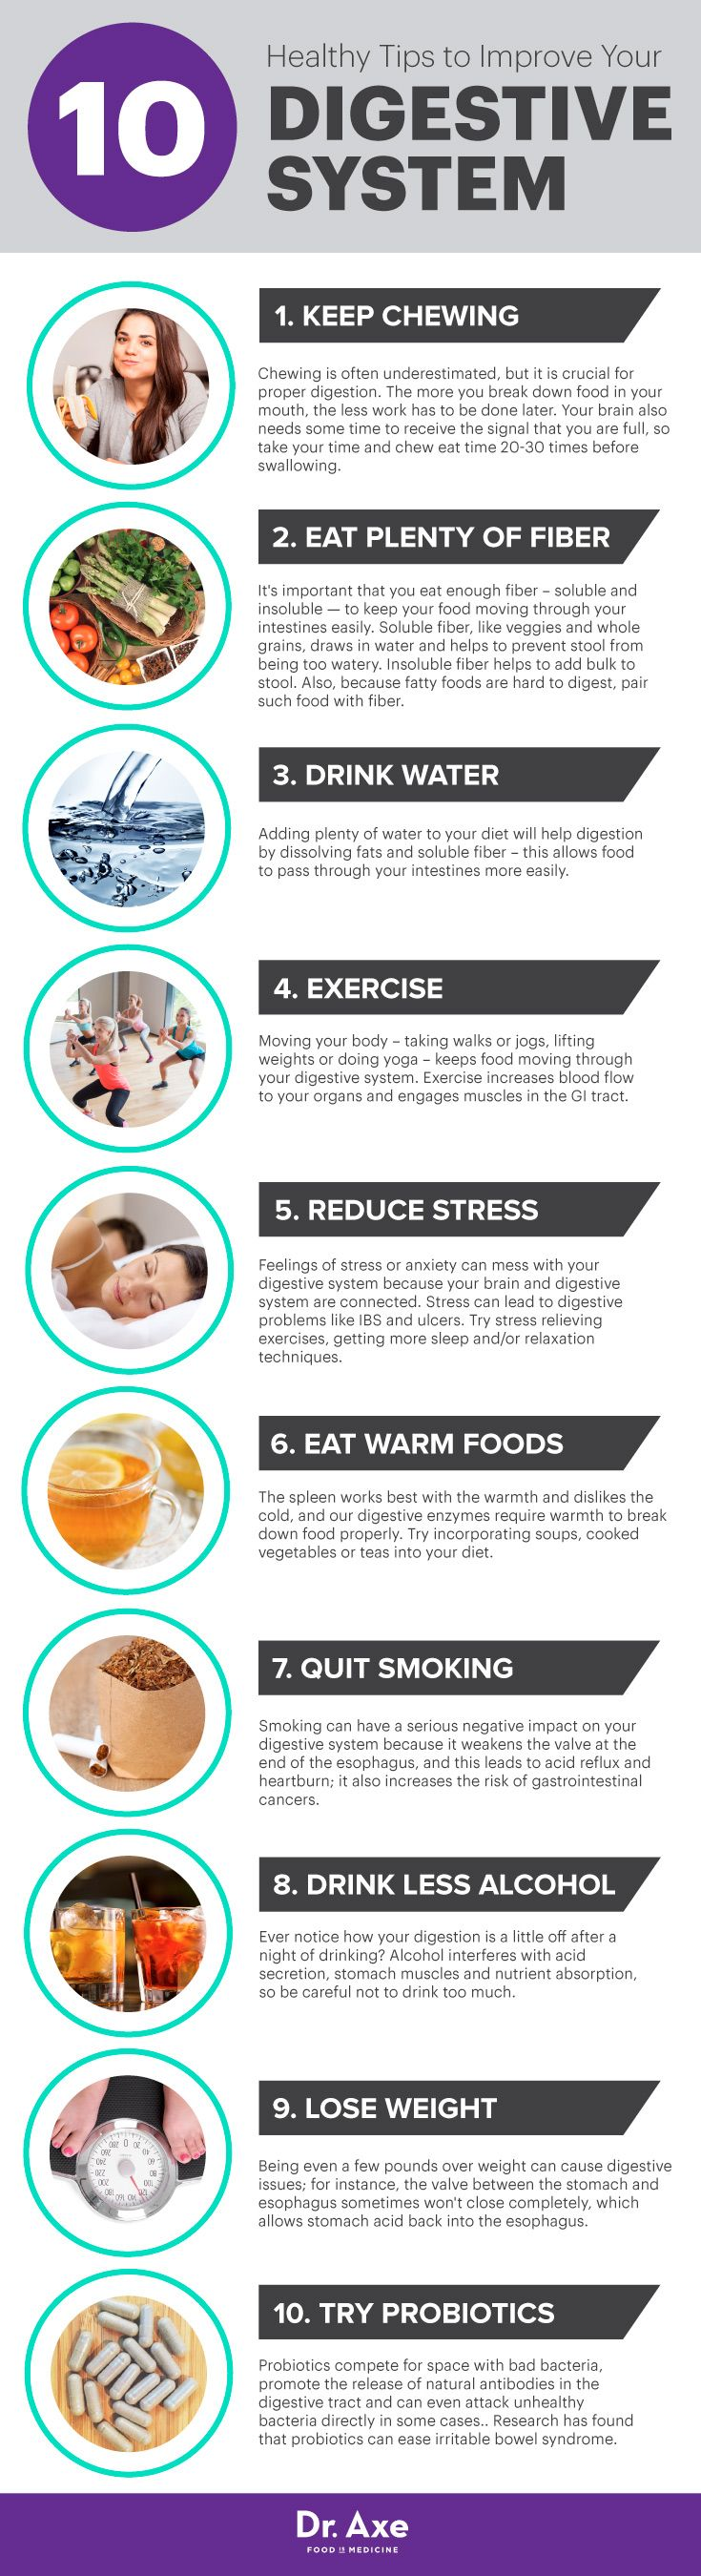 9-10-tips-to-improve-digestion